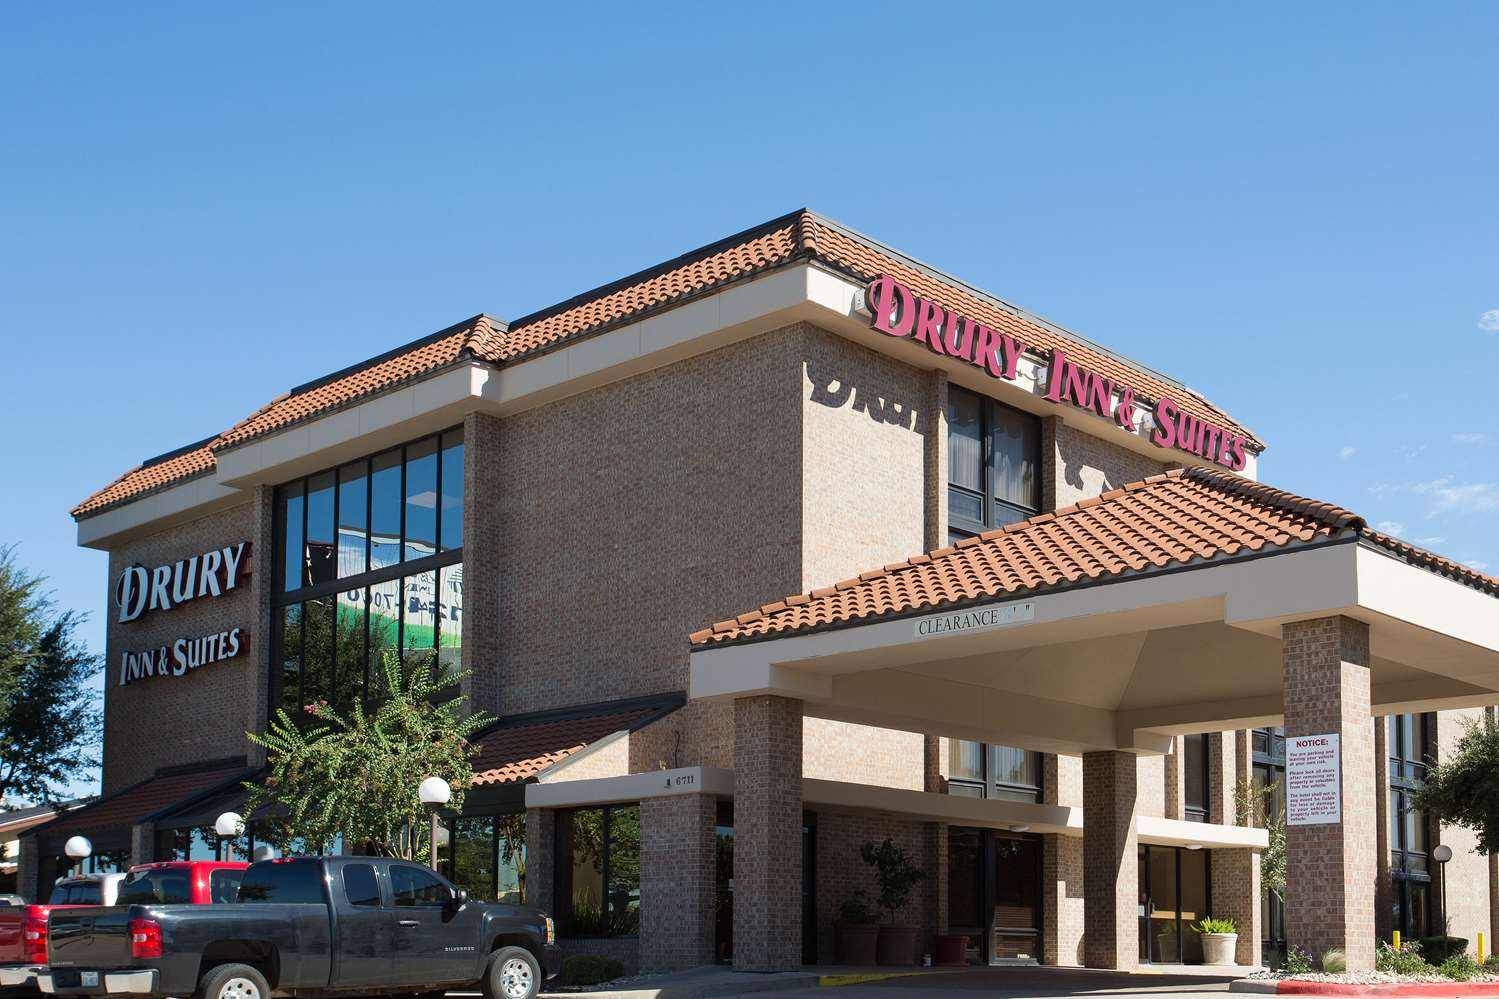 Drury Inn & Suites North Austin